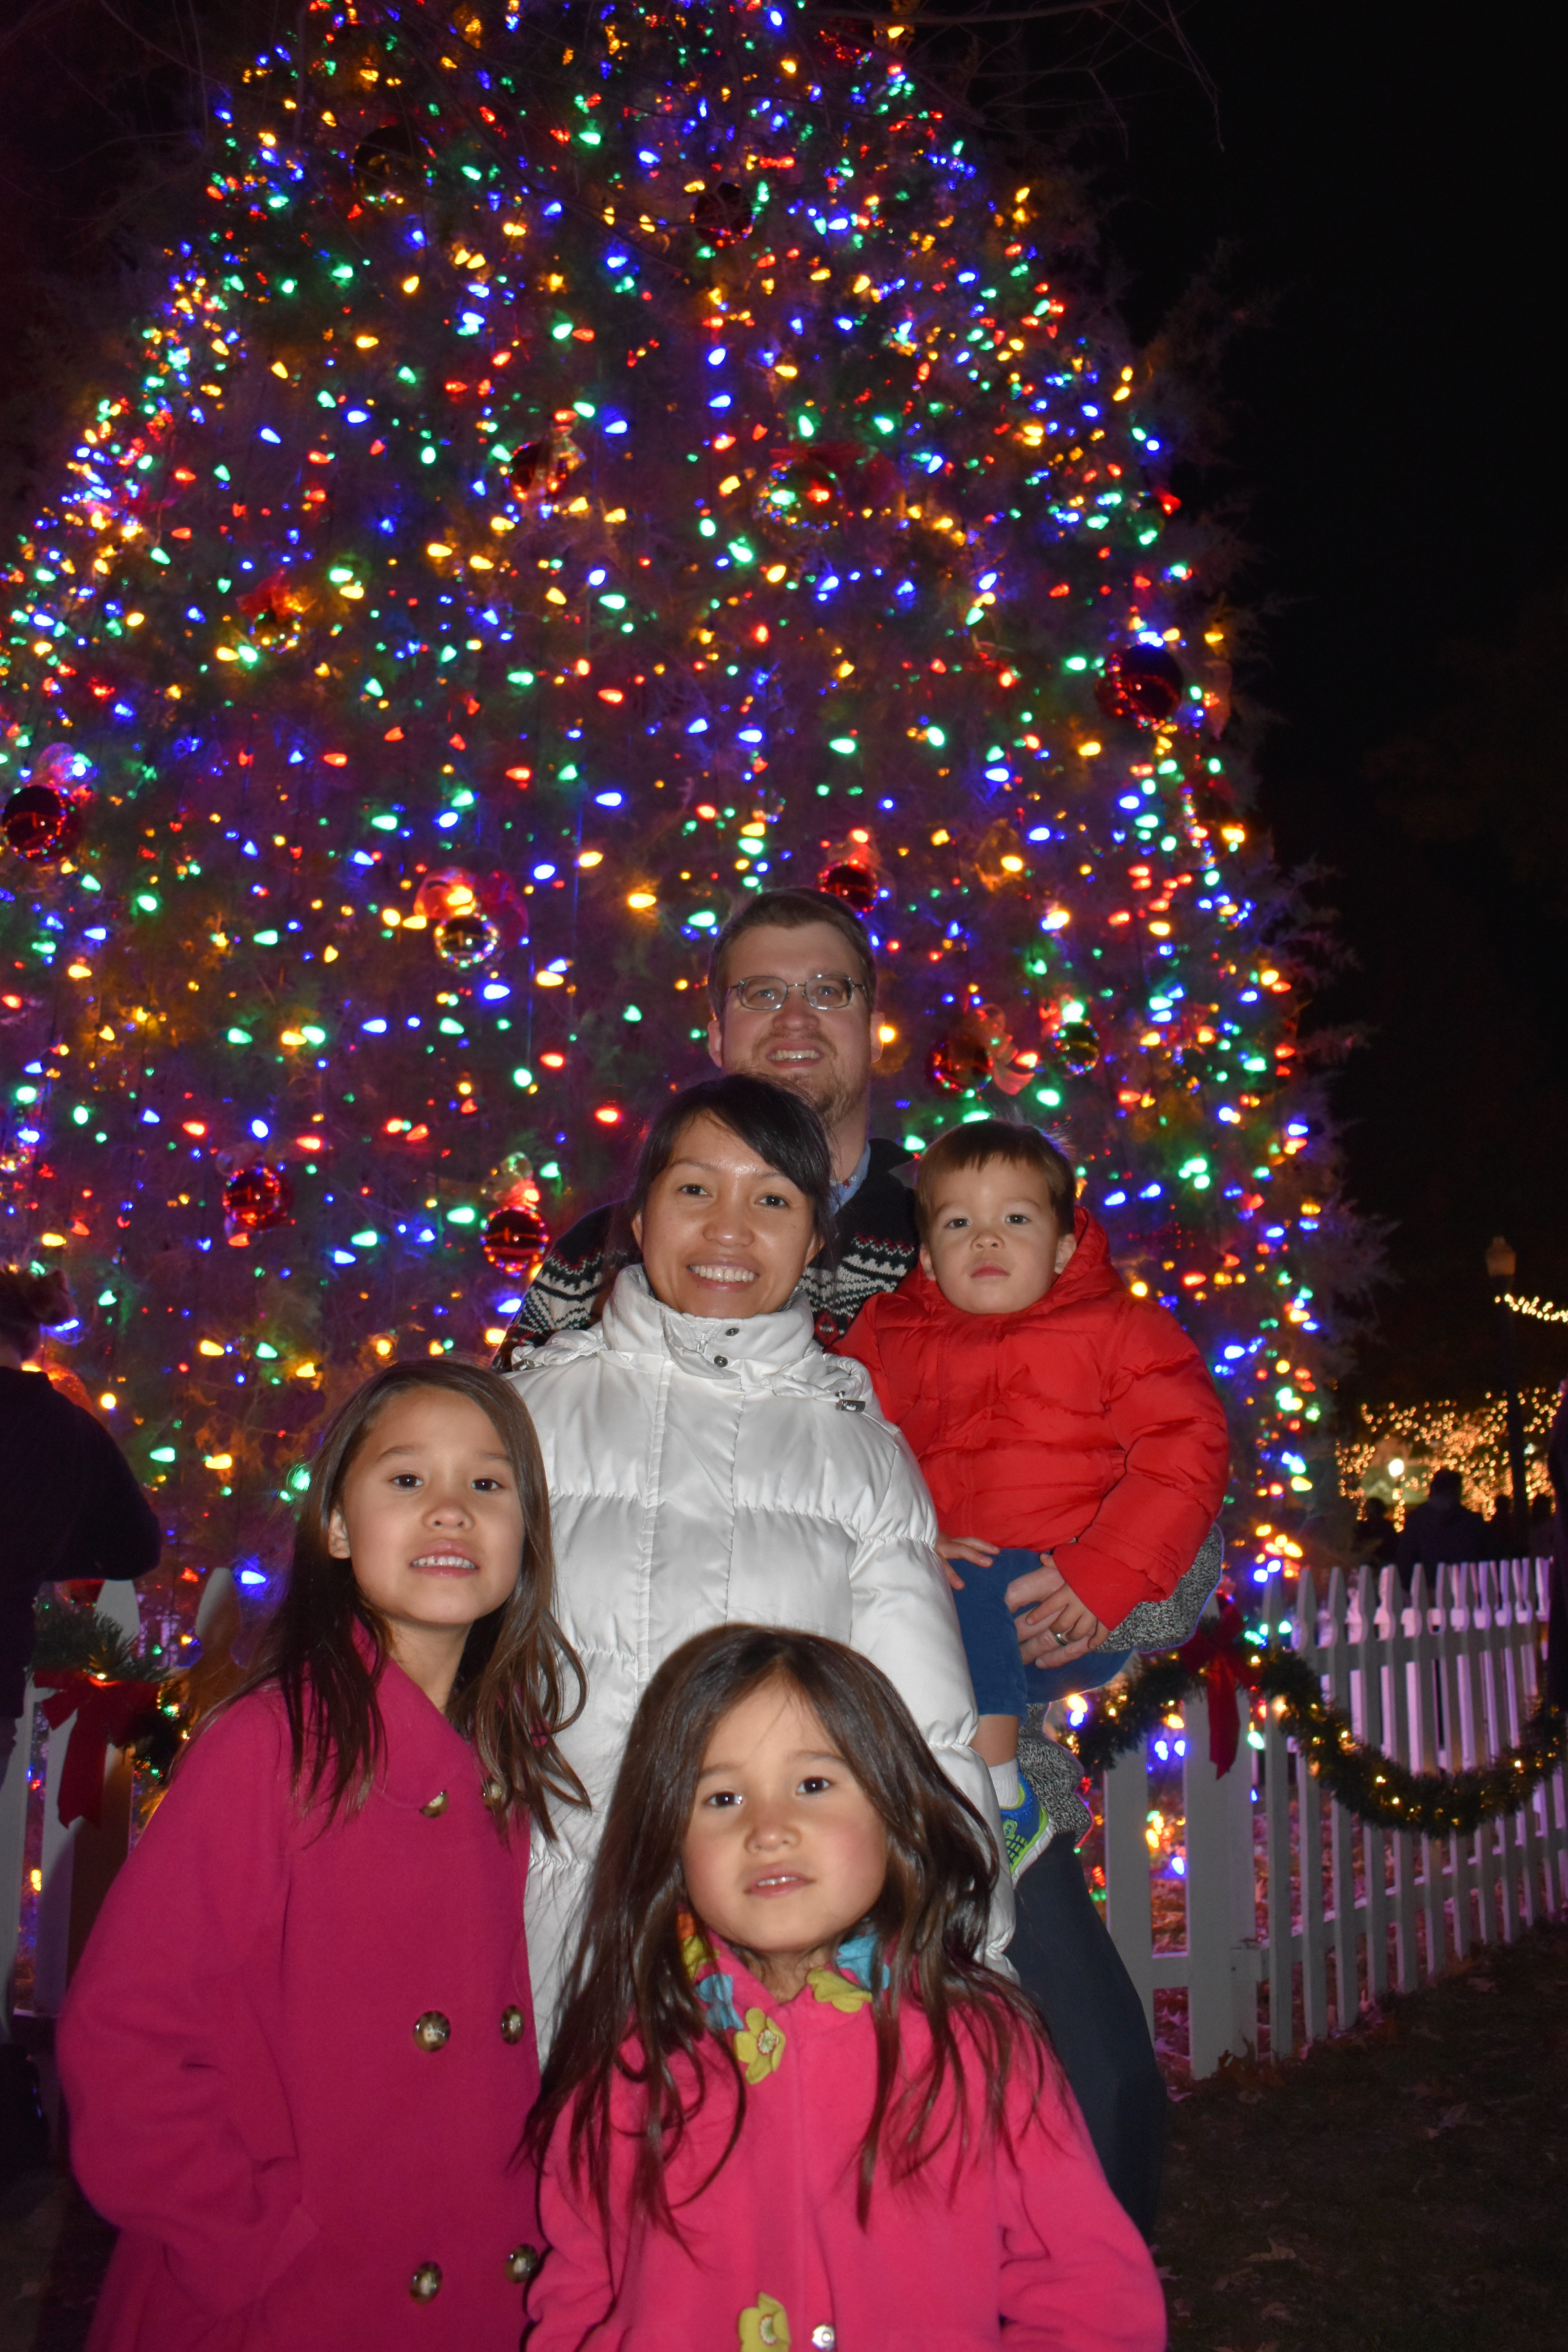 The annual Christmas Tree Lighting on the Collierville Town Square is the perfect way to kick-off Christmas! Hot chocolate was served local childrenu0027s ...  sc 1 st  Tour Collierville & Collierville Christmas Tree Lighting u2013 Tour Collierville